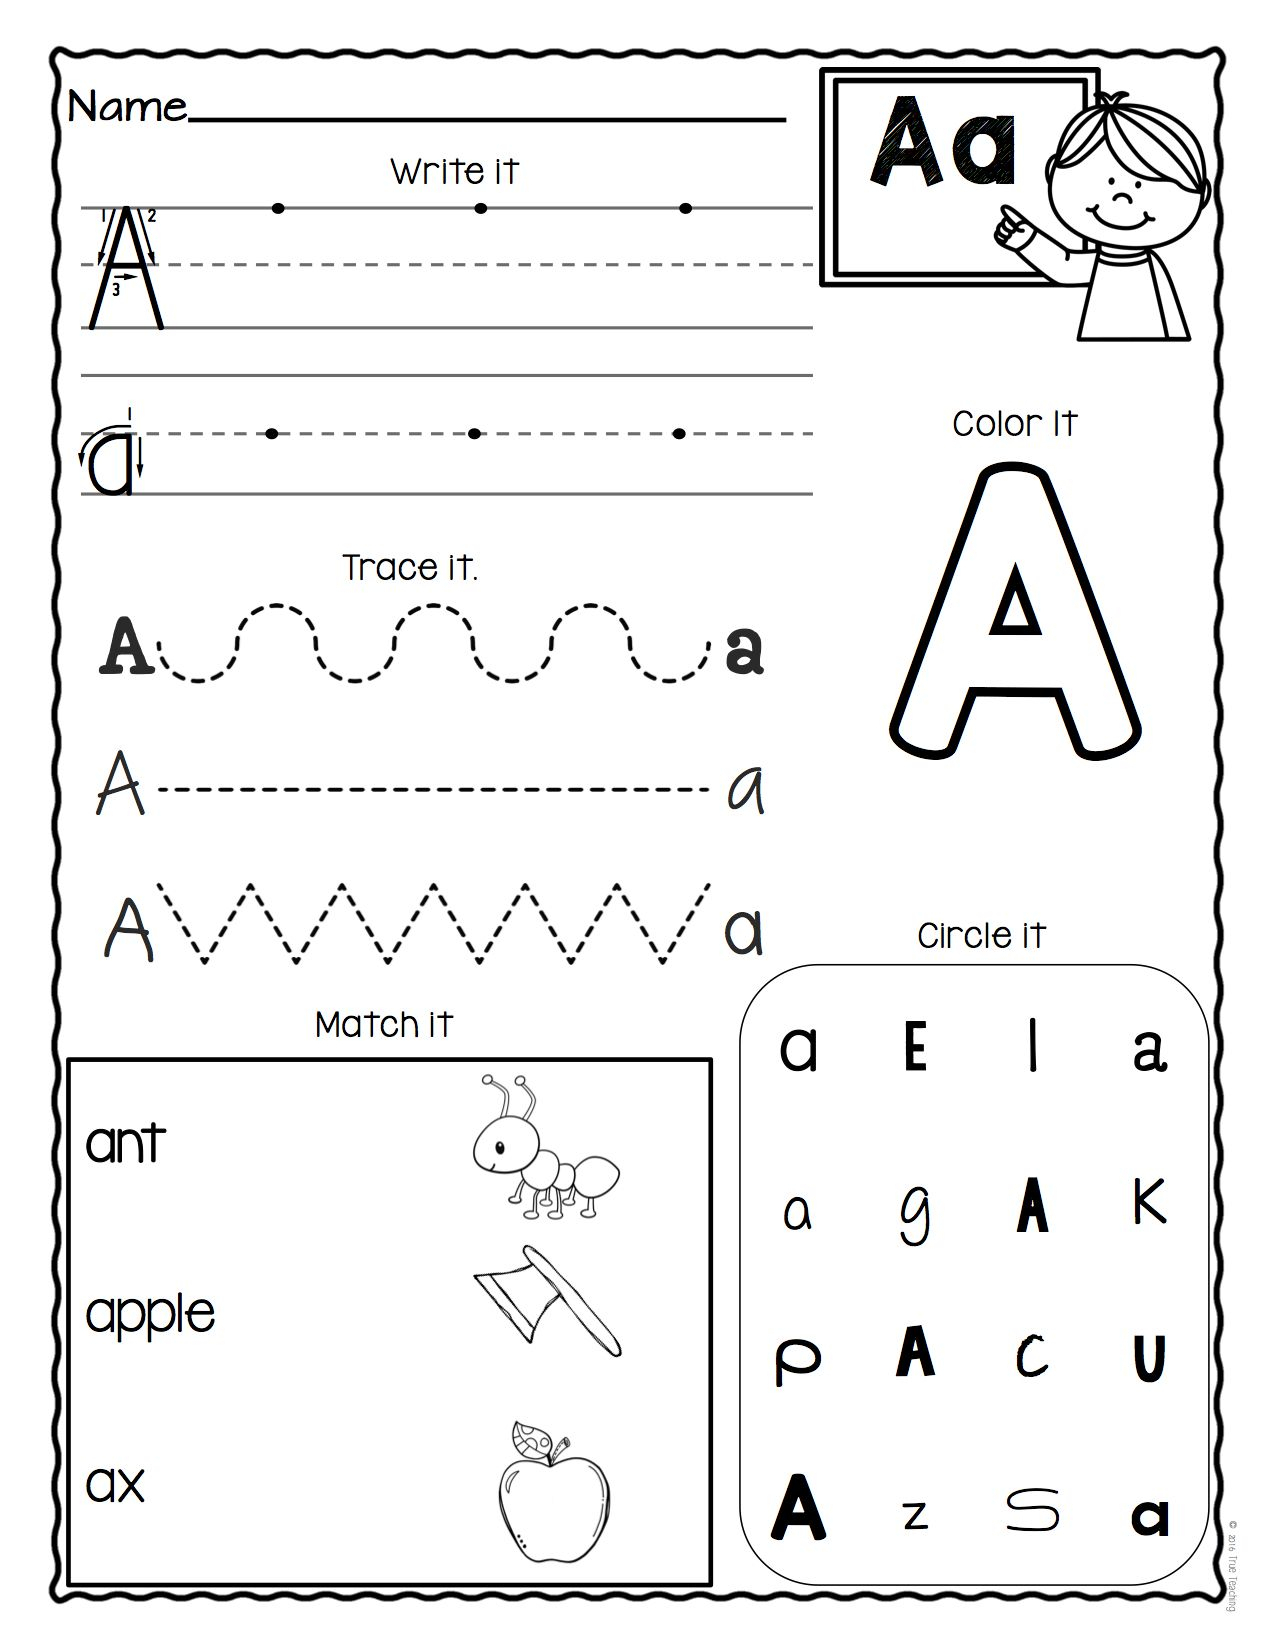 A-Z Letter Worksheets (Set 3) | Preschool Worksheets pertaining to A-Z Alphabet Worksheets Kindergarten